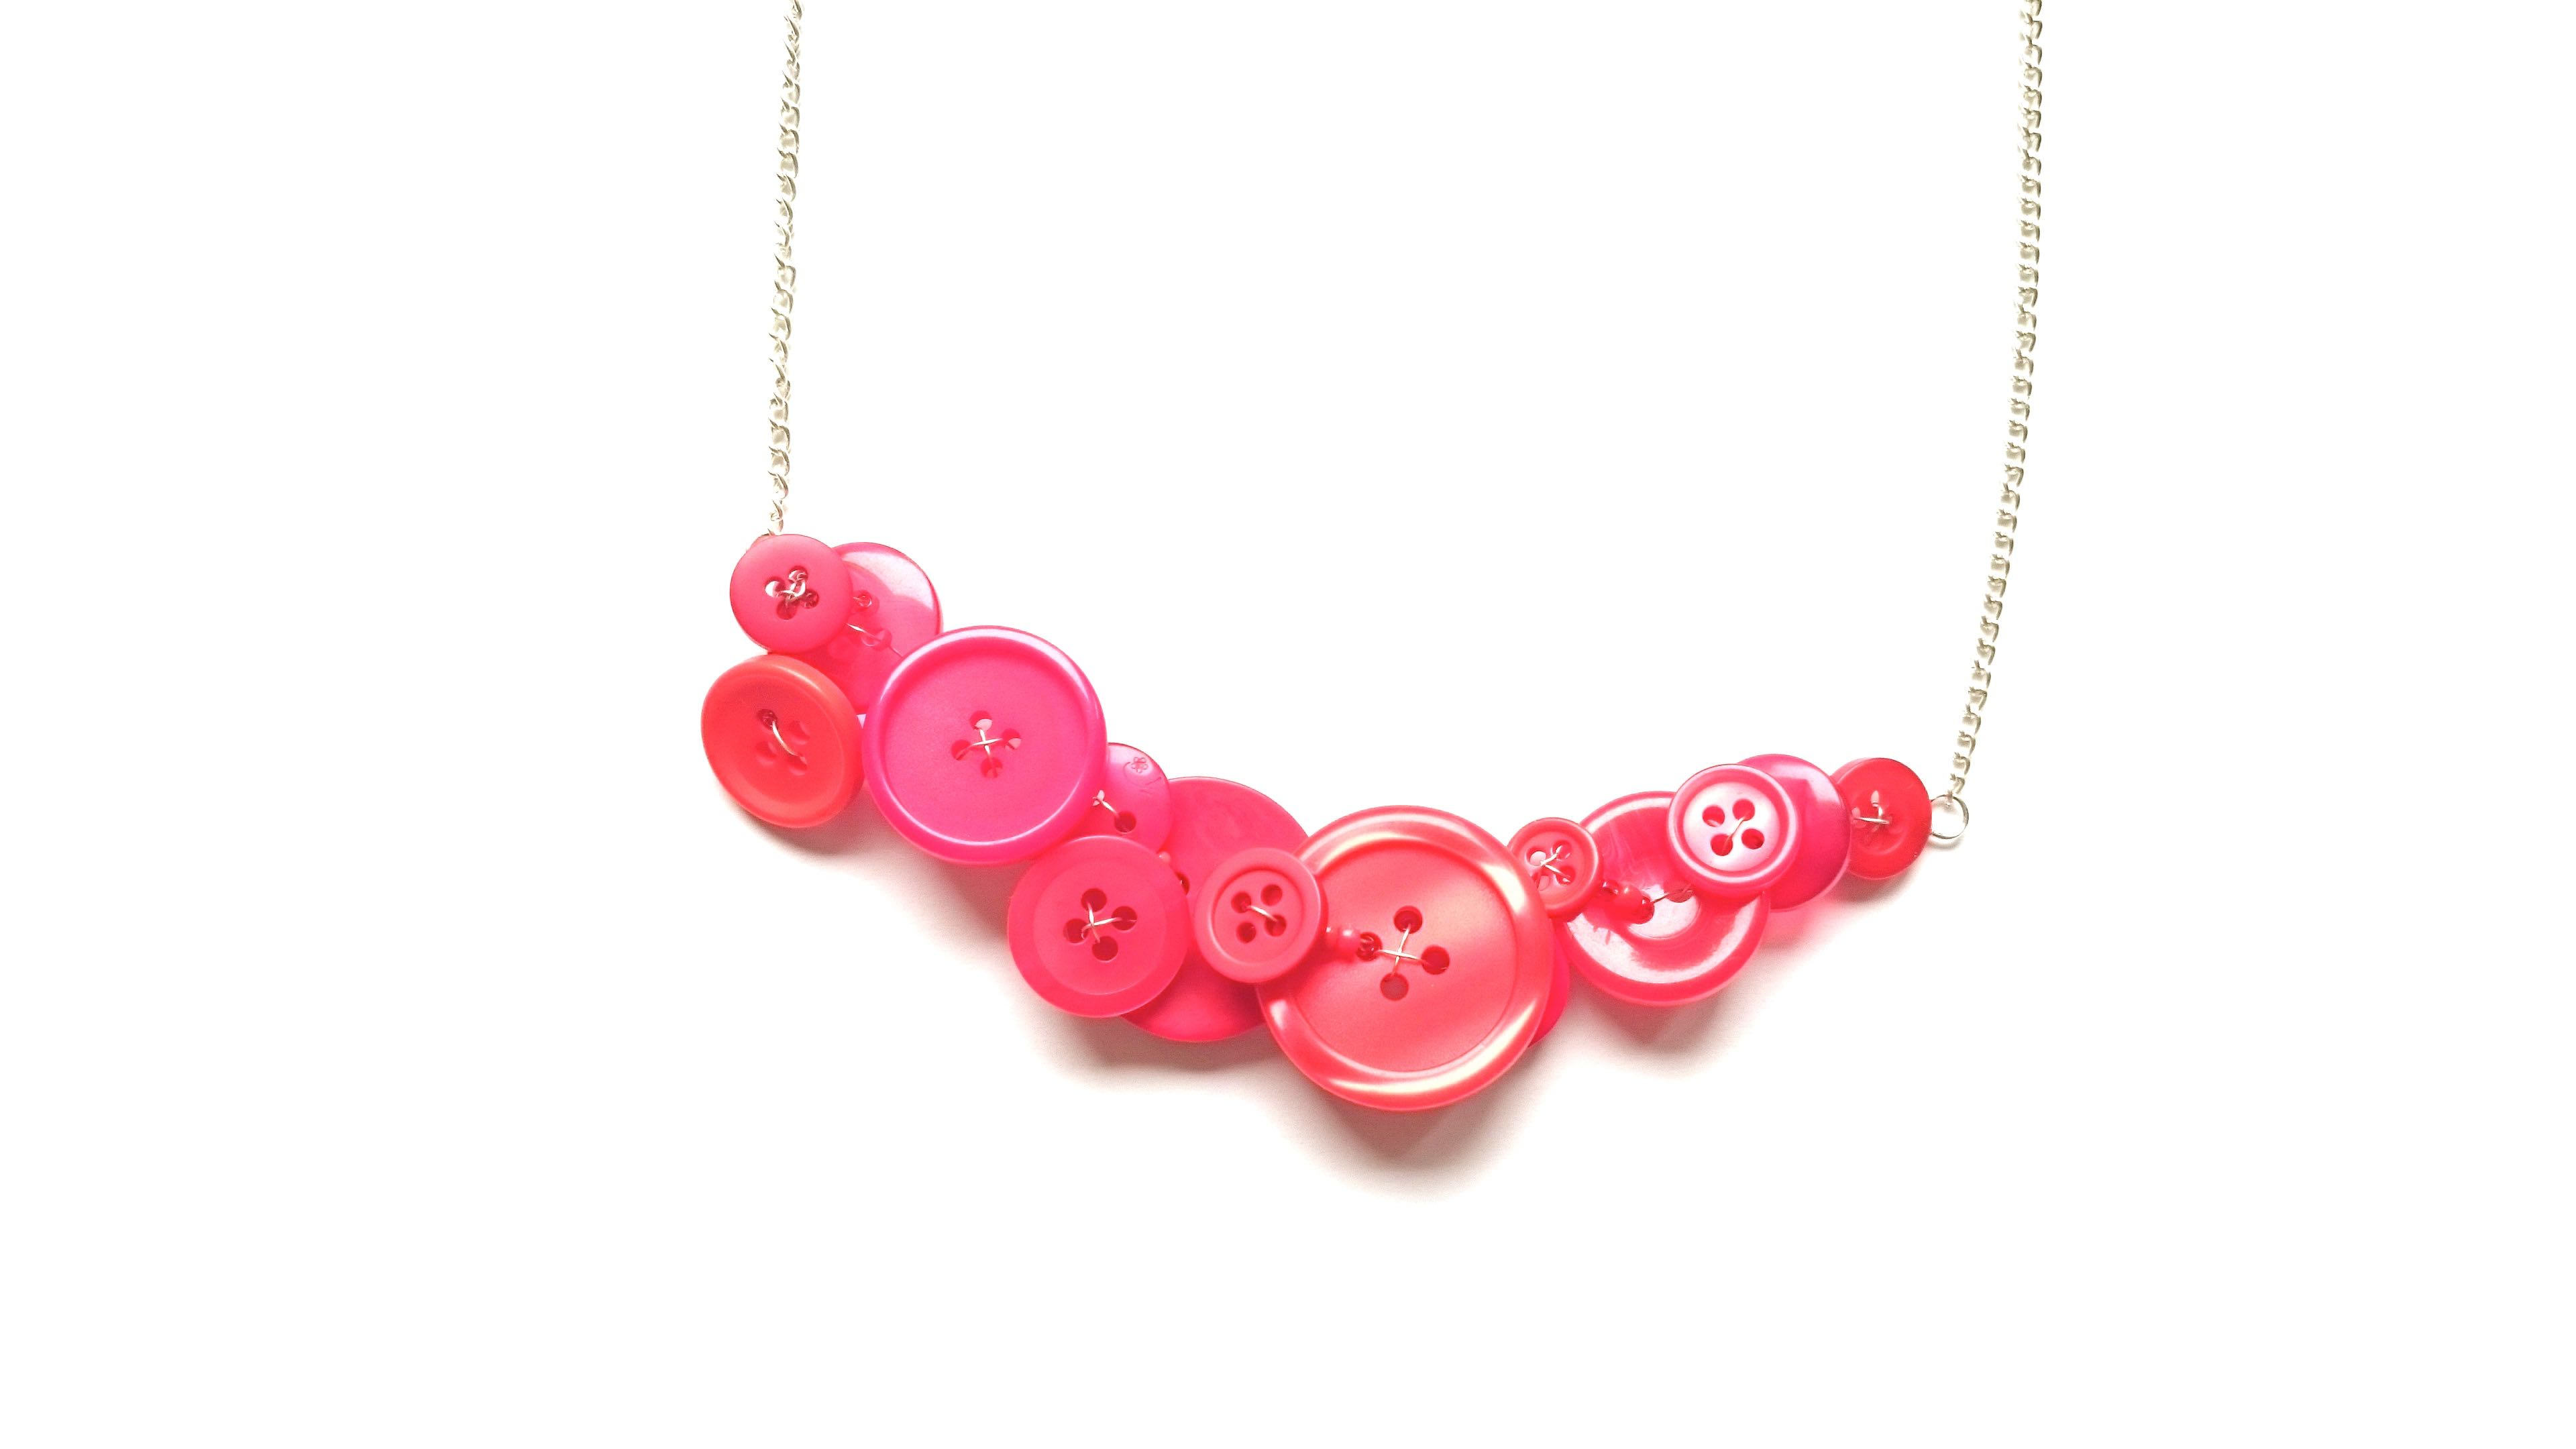 adina met necklace pendant red l heart circle with chain the plastelina